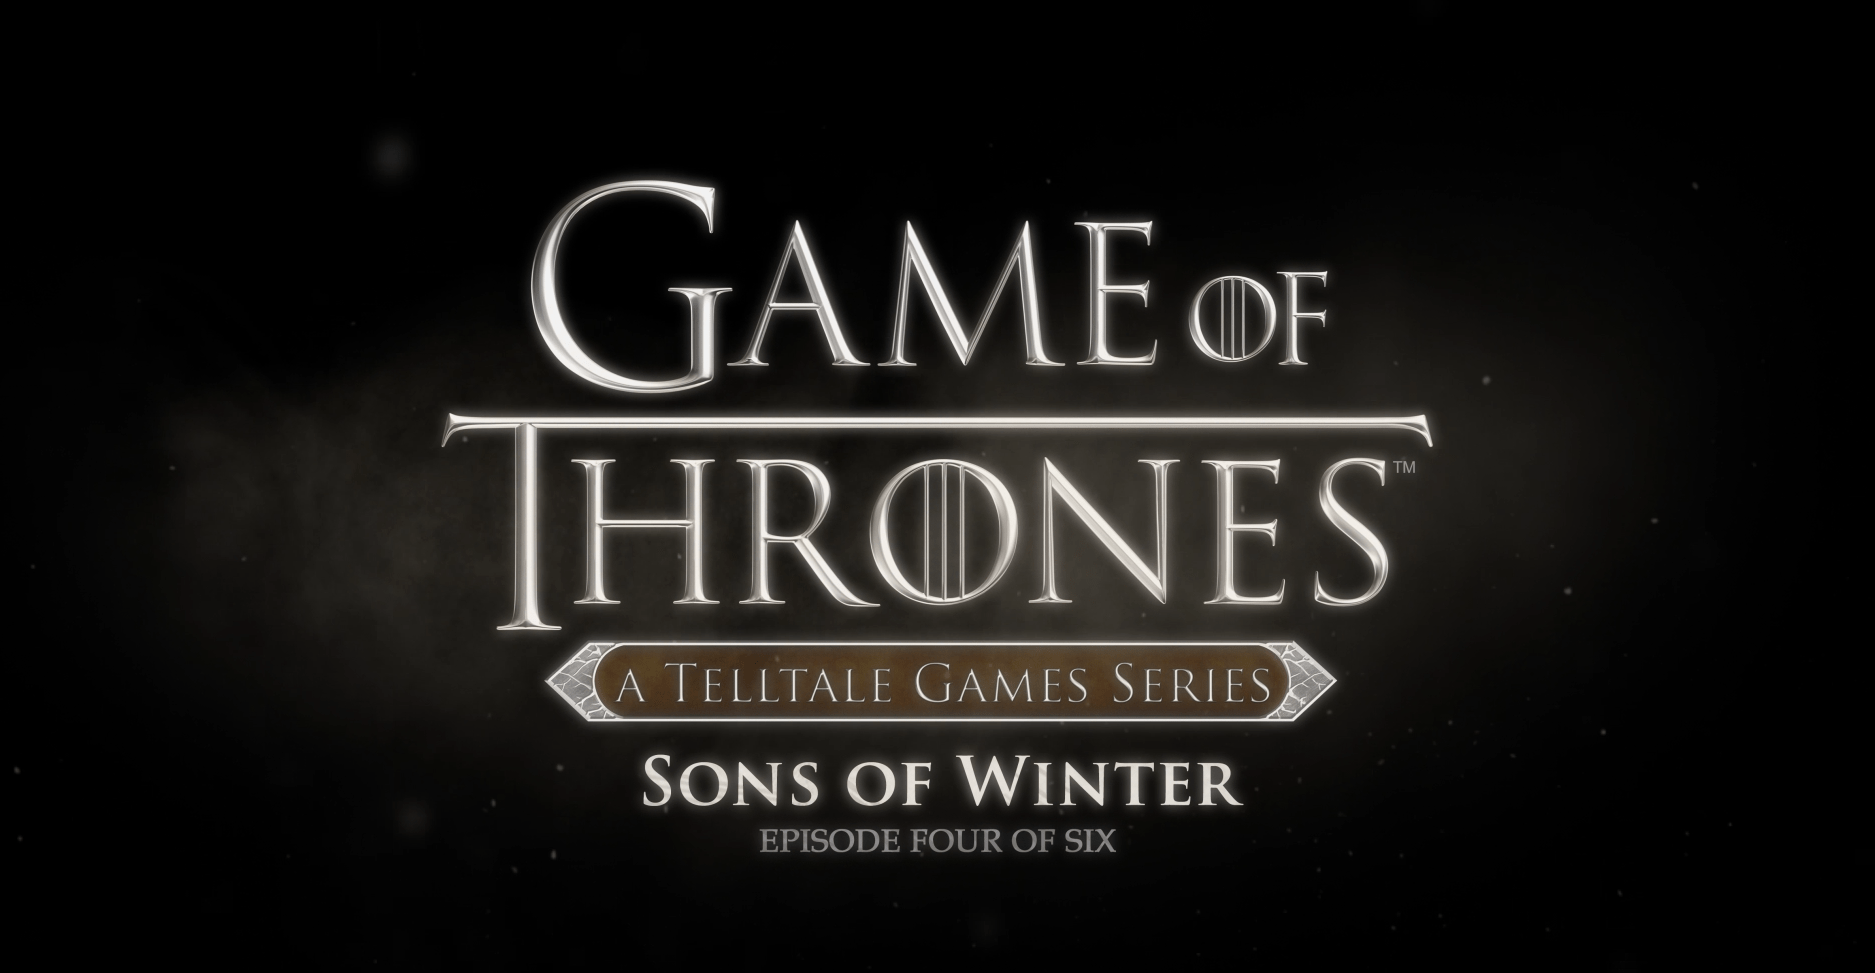 Photo of Telltale Game of Thrones Episode 4: Sons of Winter Trailer